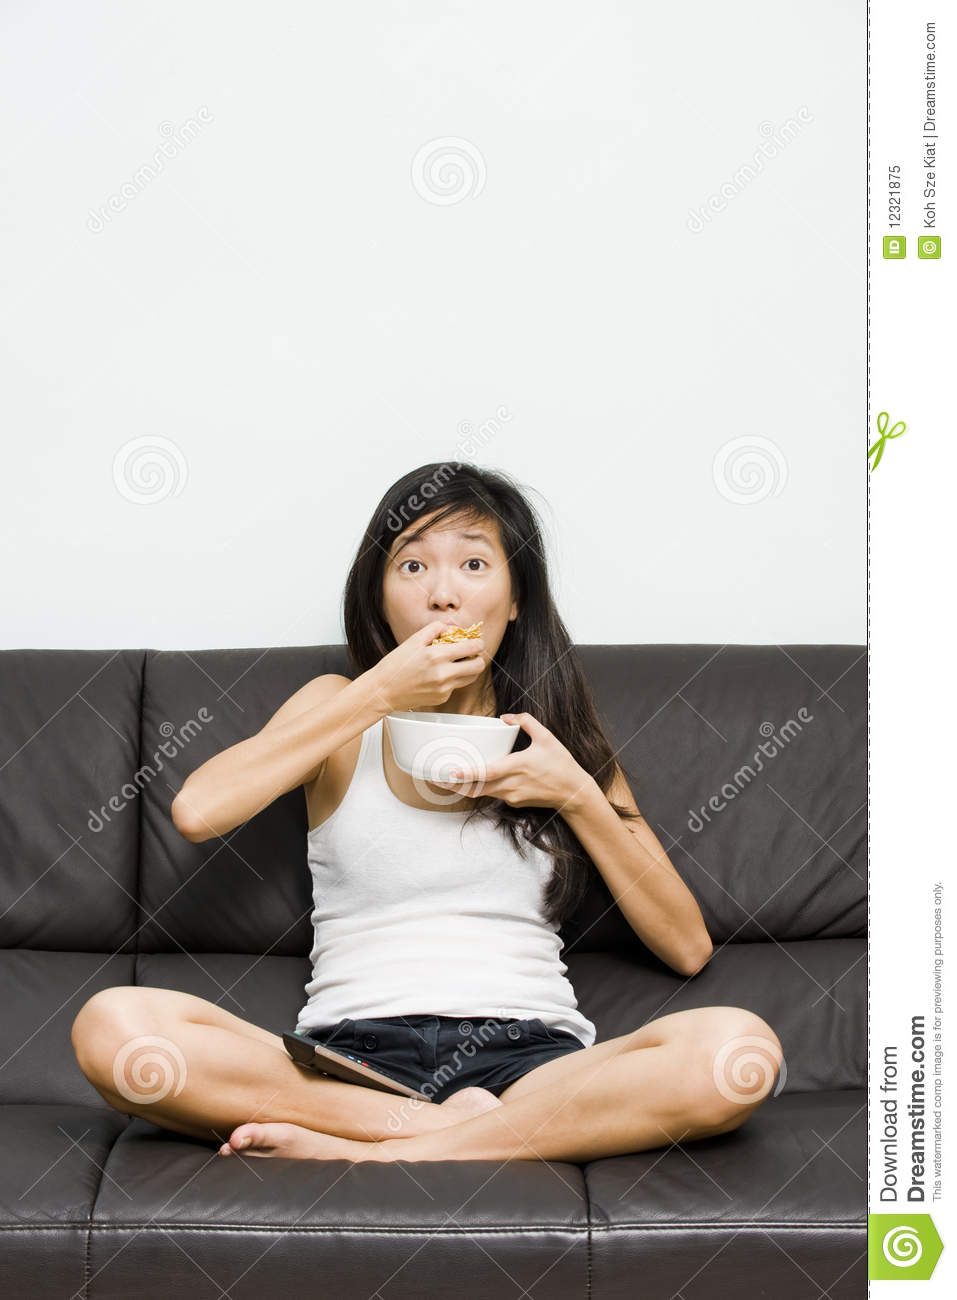 Couch Potato Eating And Watching Television Stock Image